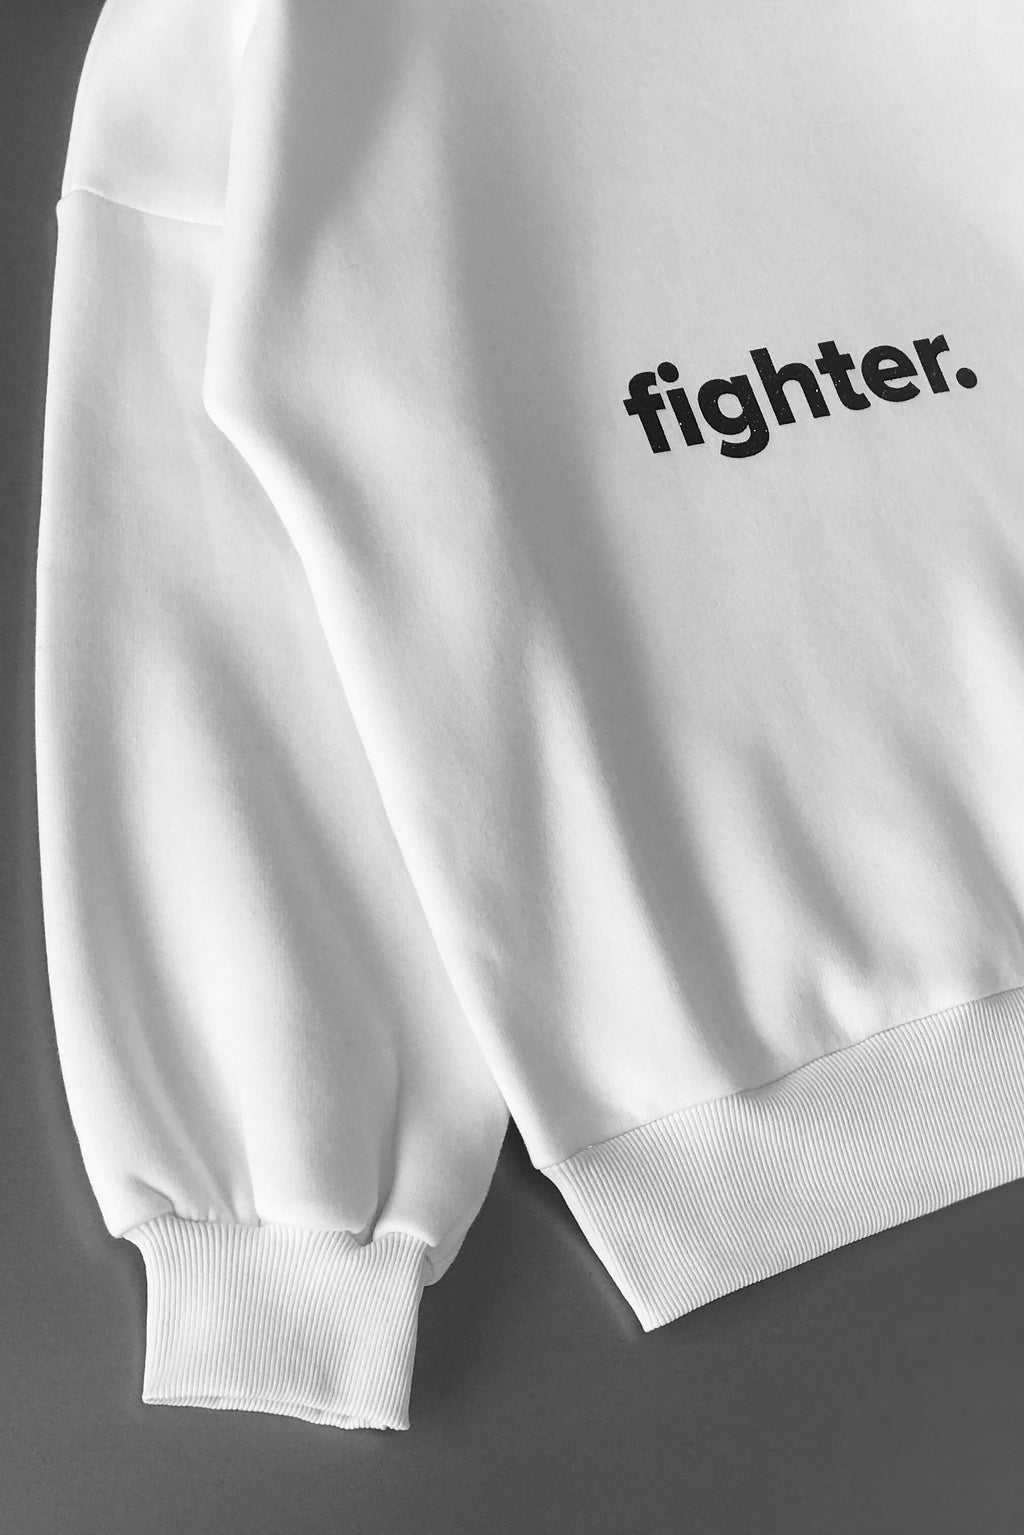 White Fighter Sweatshirt - Waist Length